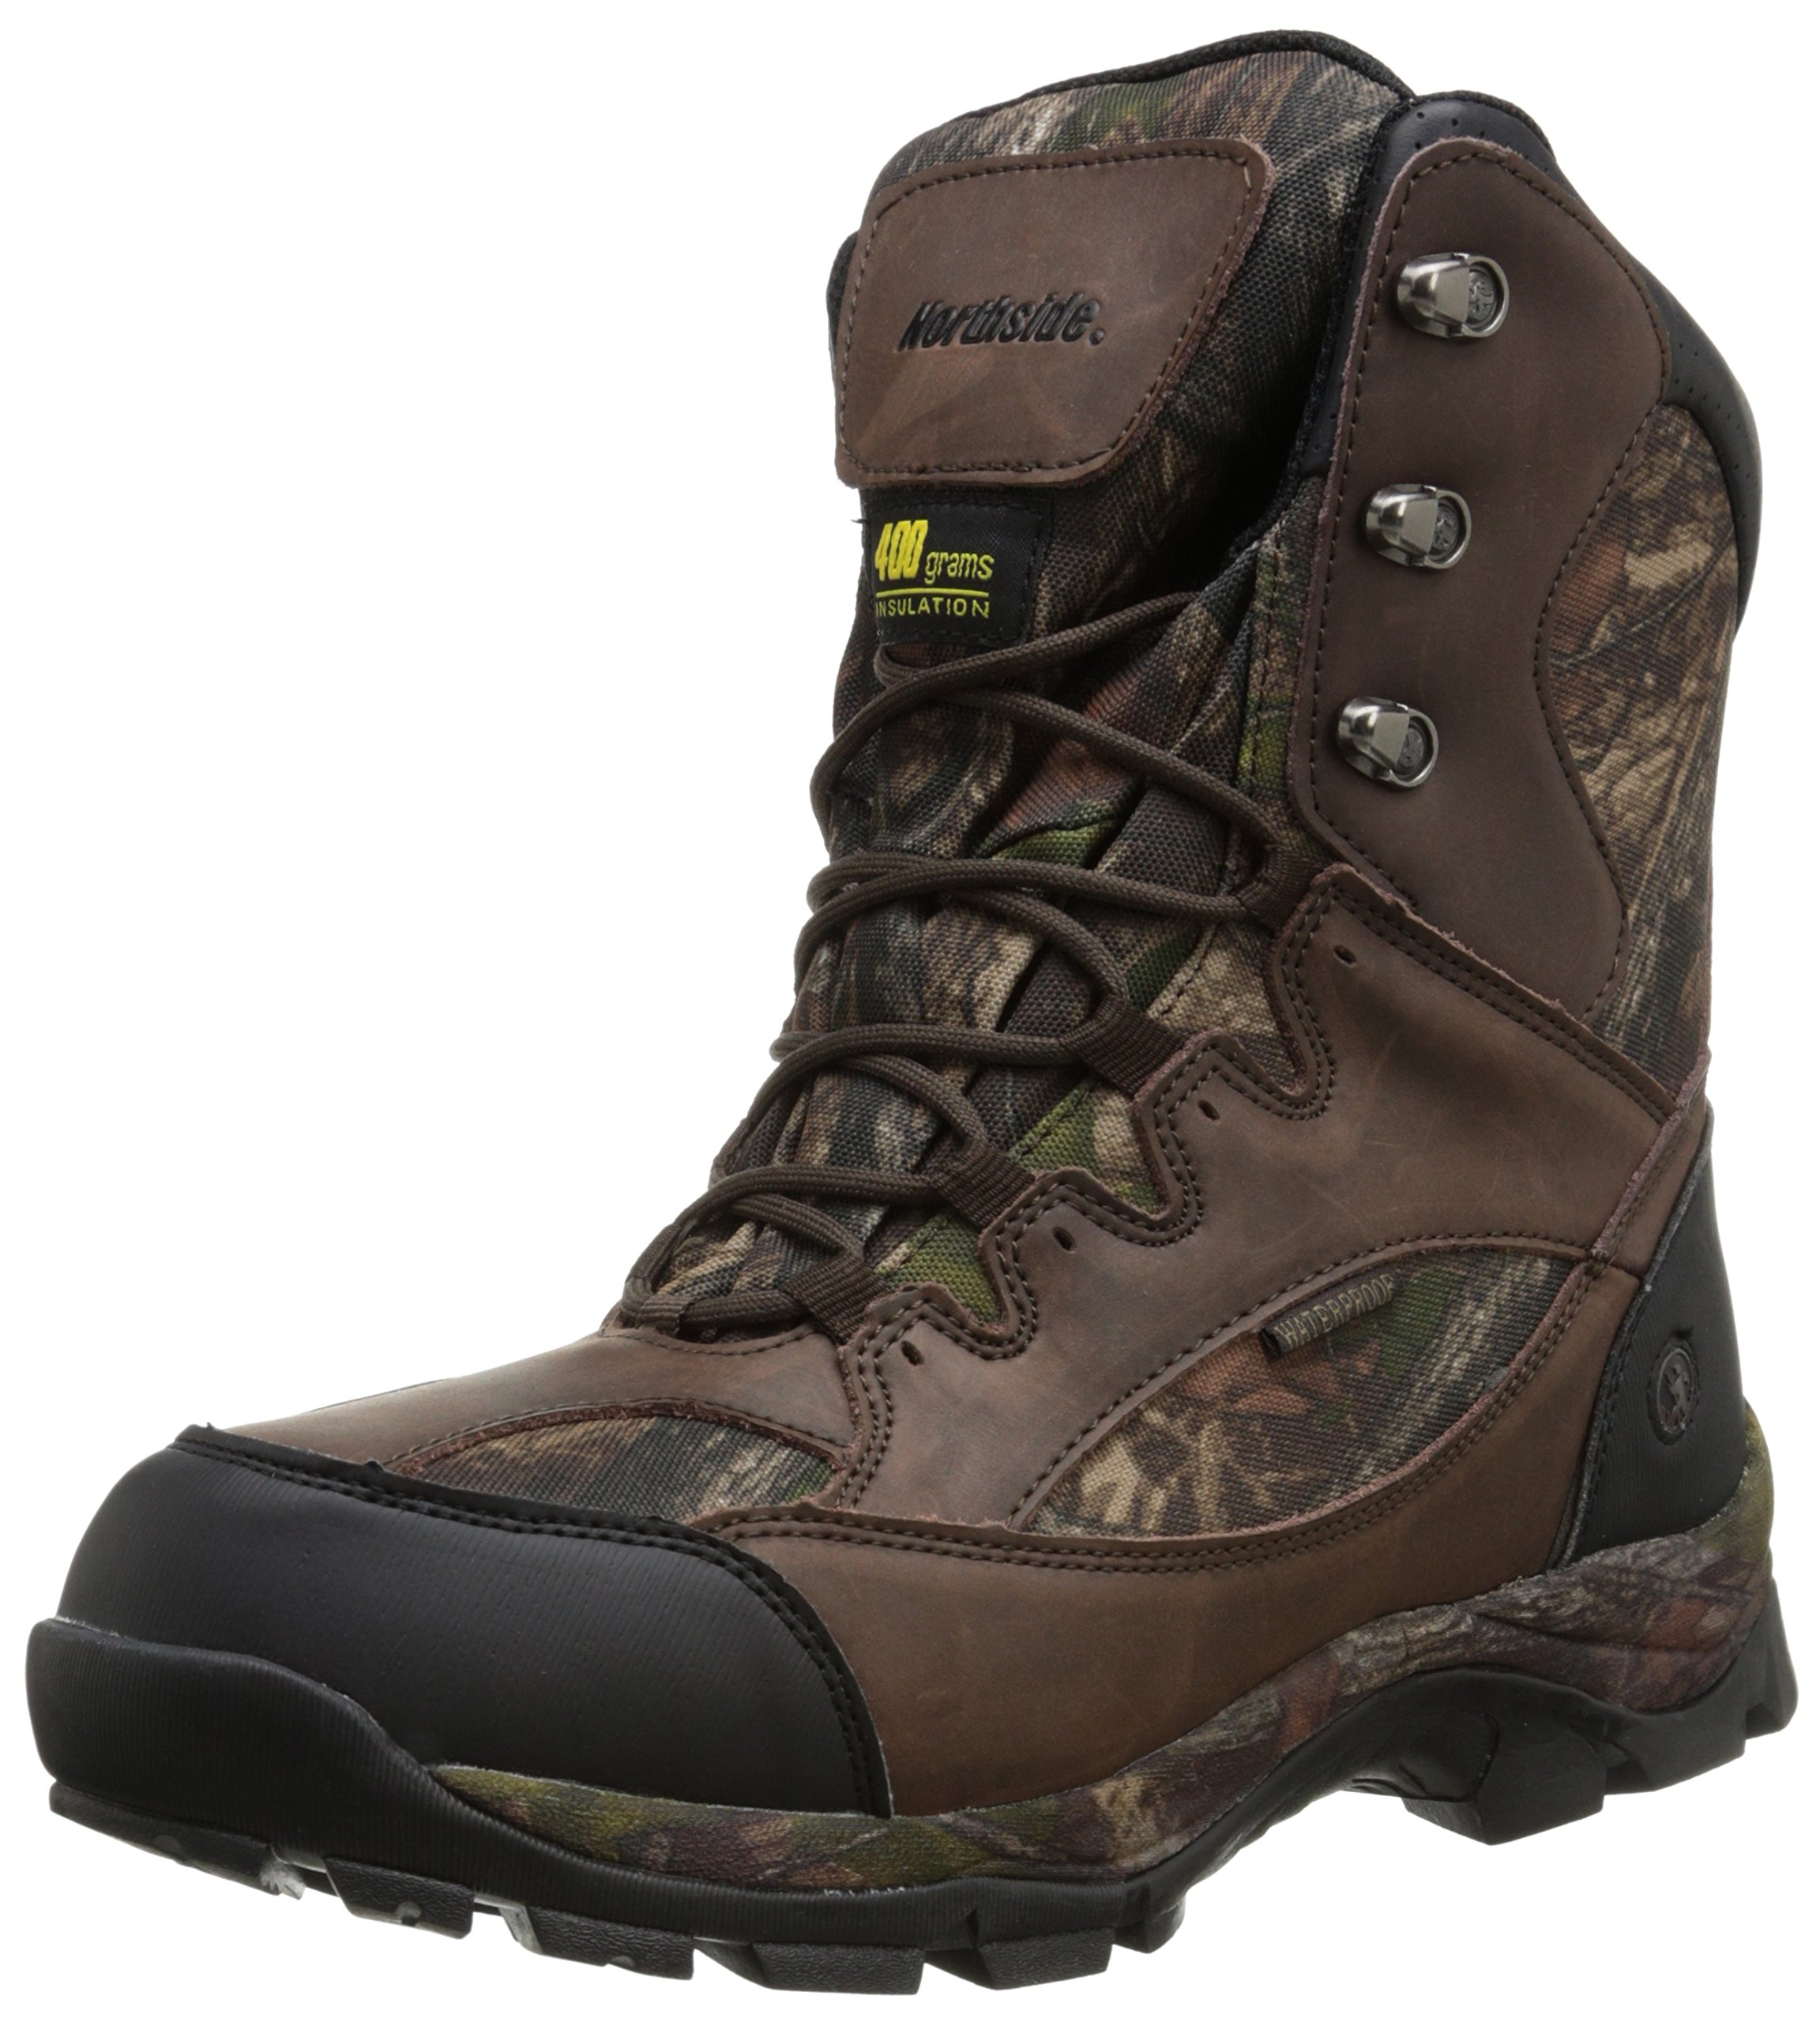 Northside Men's Renegade 400 Lace-Up Hunting Boot,Brown Camo,8 M US